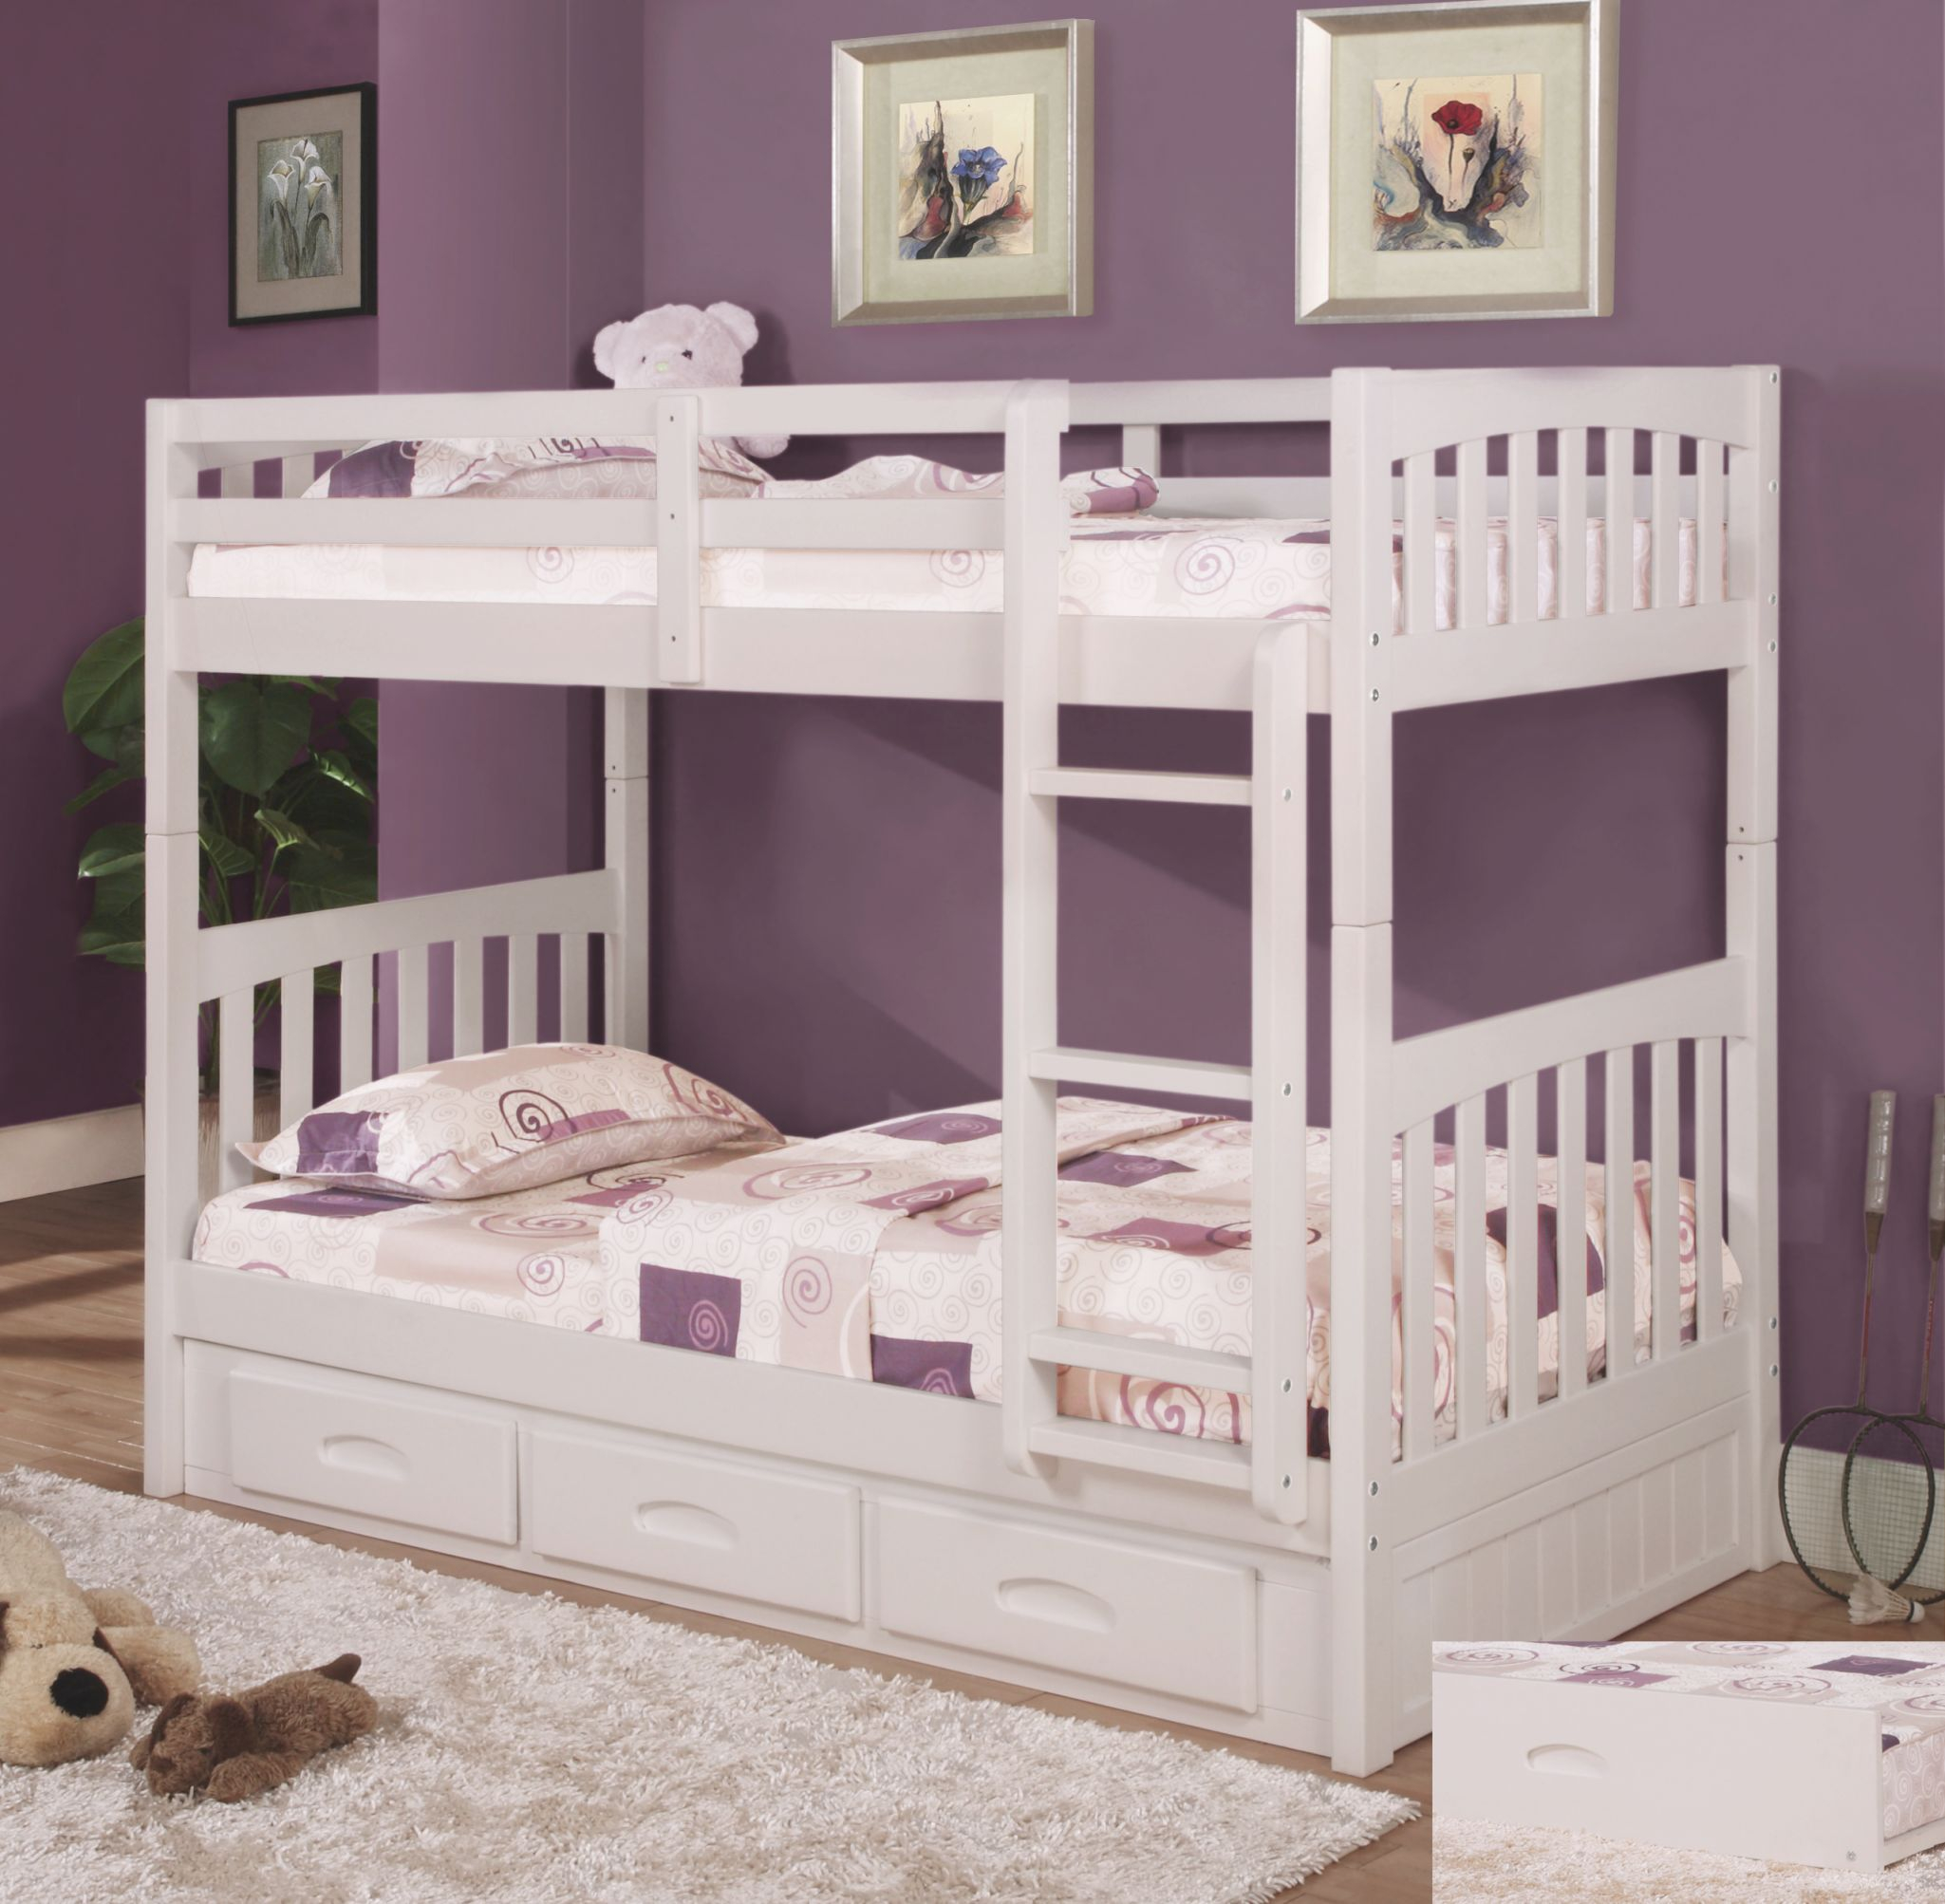 Discovery World Furniture Twin Over Twin White Mission Bunk Bed with Twin Bedroom Furniture Set